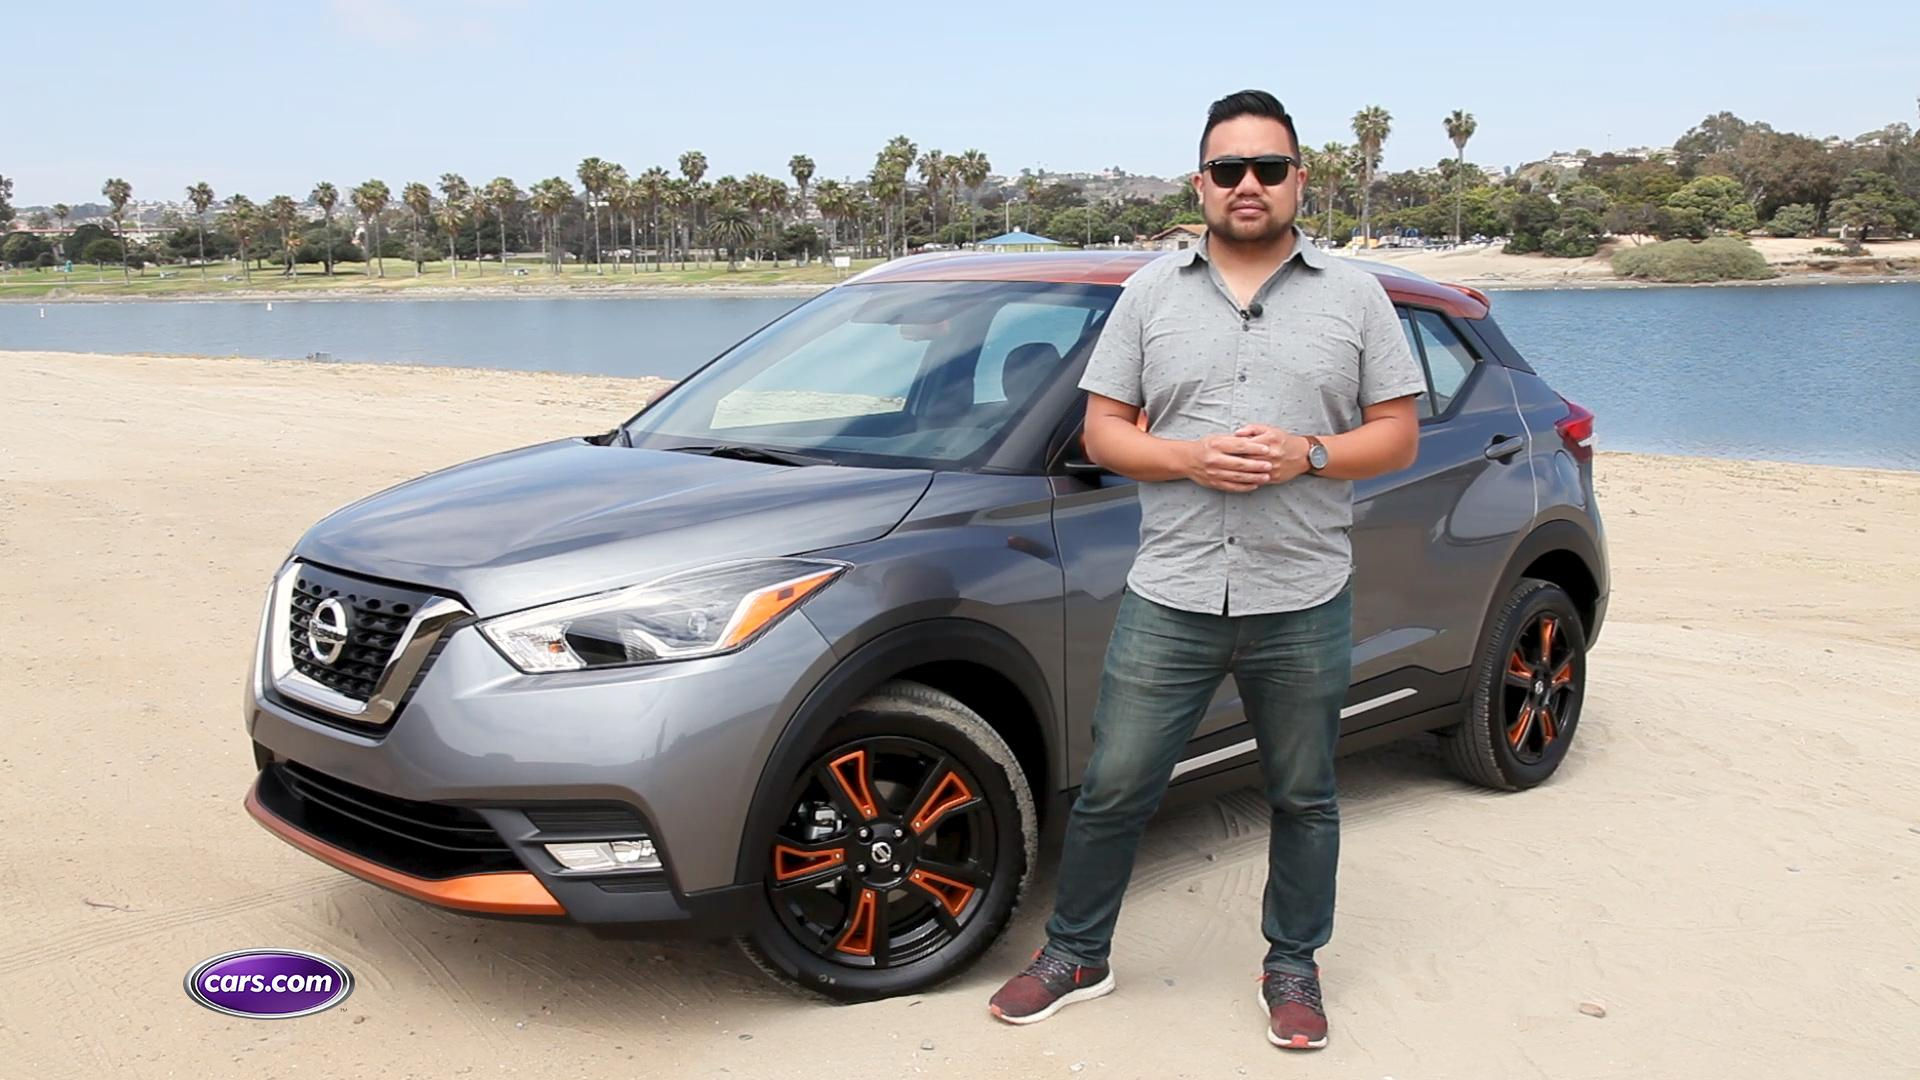 2018 Nissan Kicks First Drive A Non Suv Thats Big On Utility Pimped Red Jeep Rubicon Video